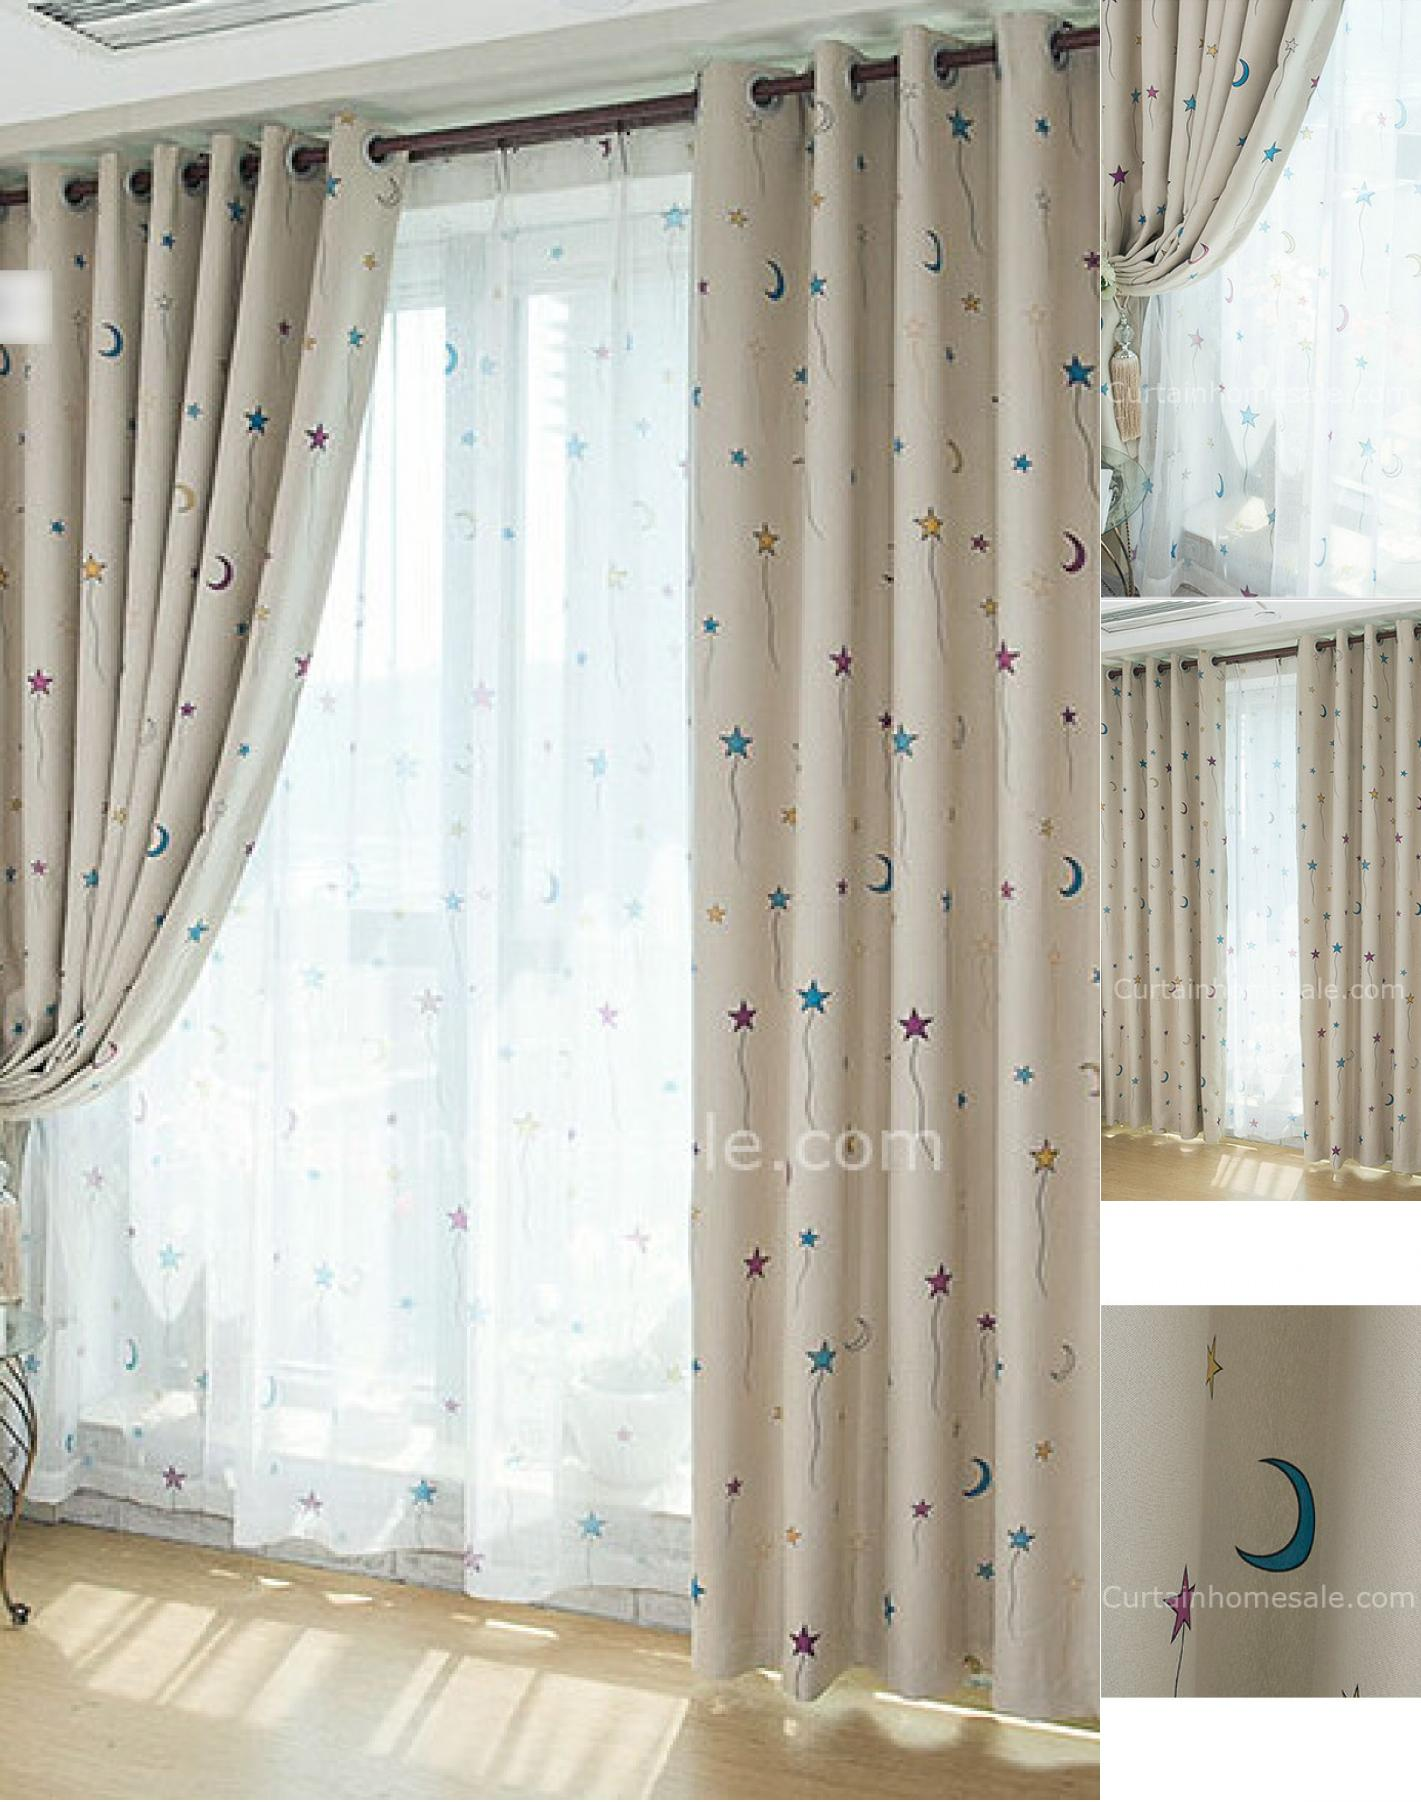 Adorable Star Month Theme Of Blackout Curtains Nursery